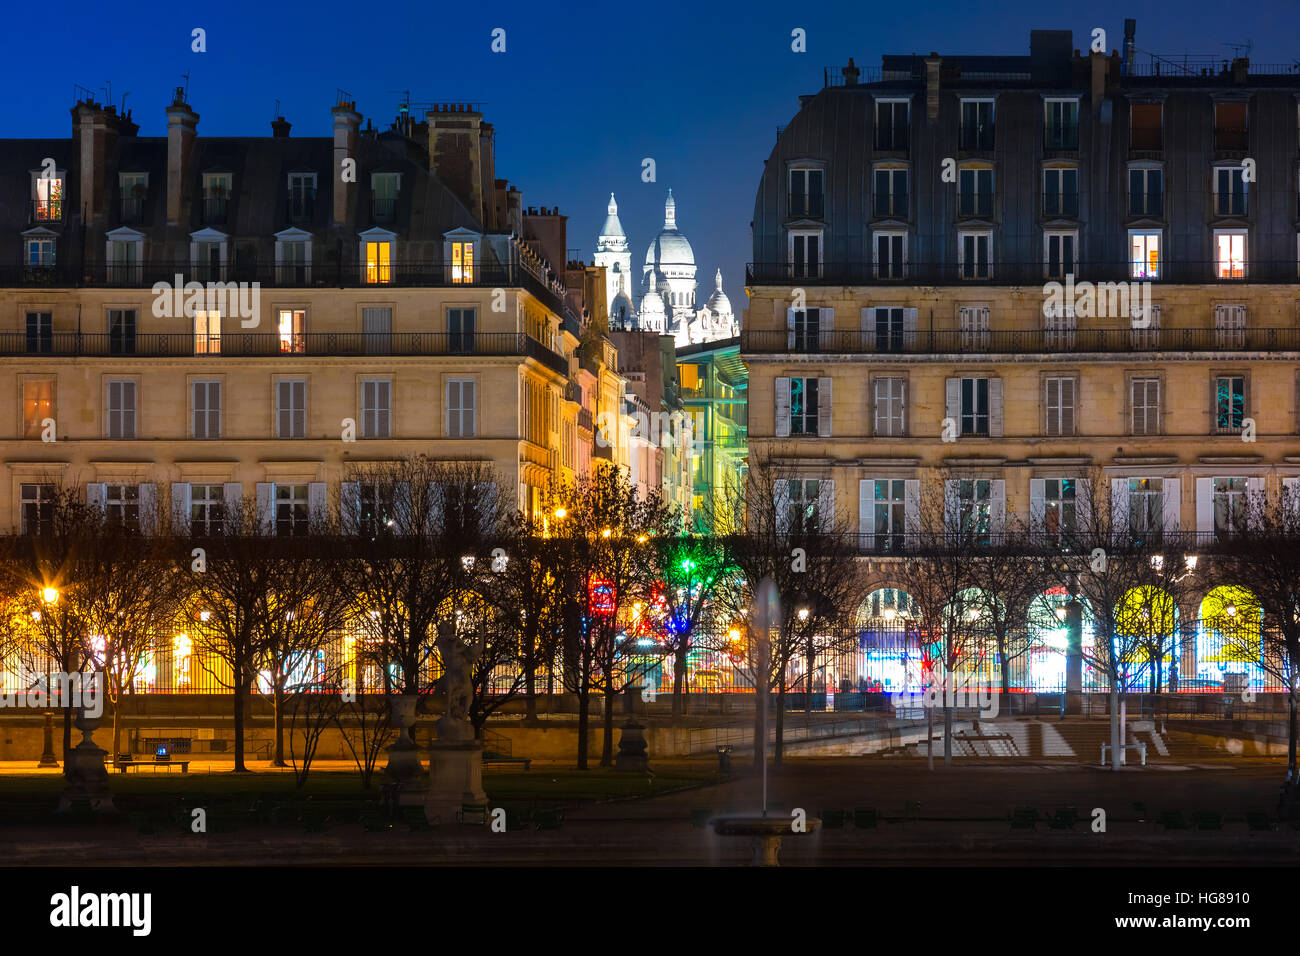 Sacre-Coeur Basilica at night in Paris, Fraance Stock Photo